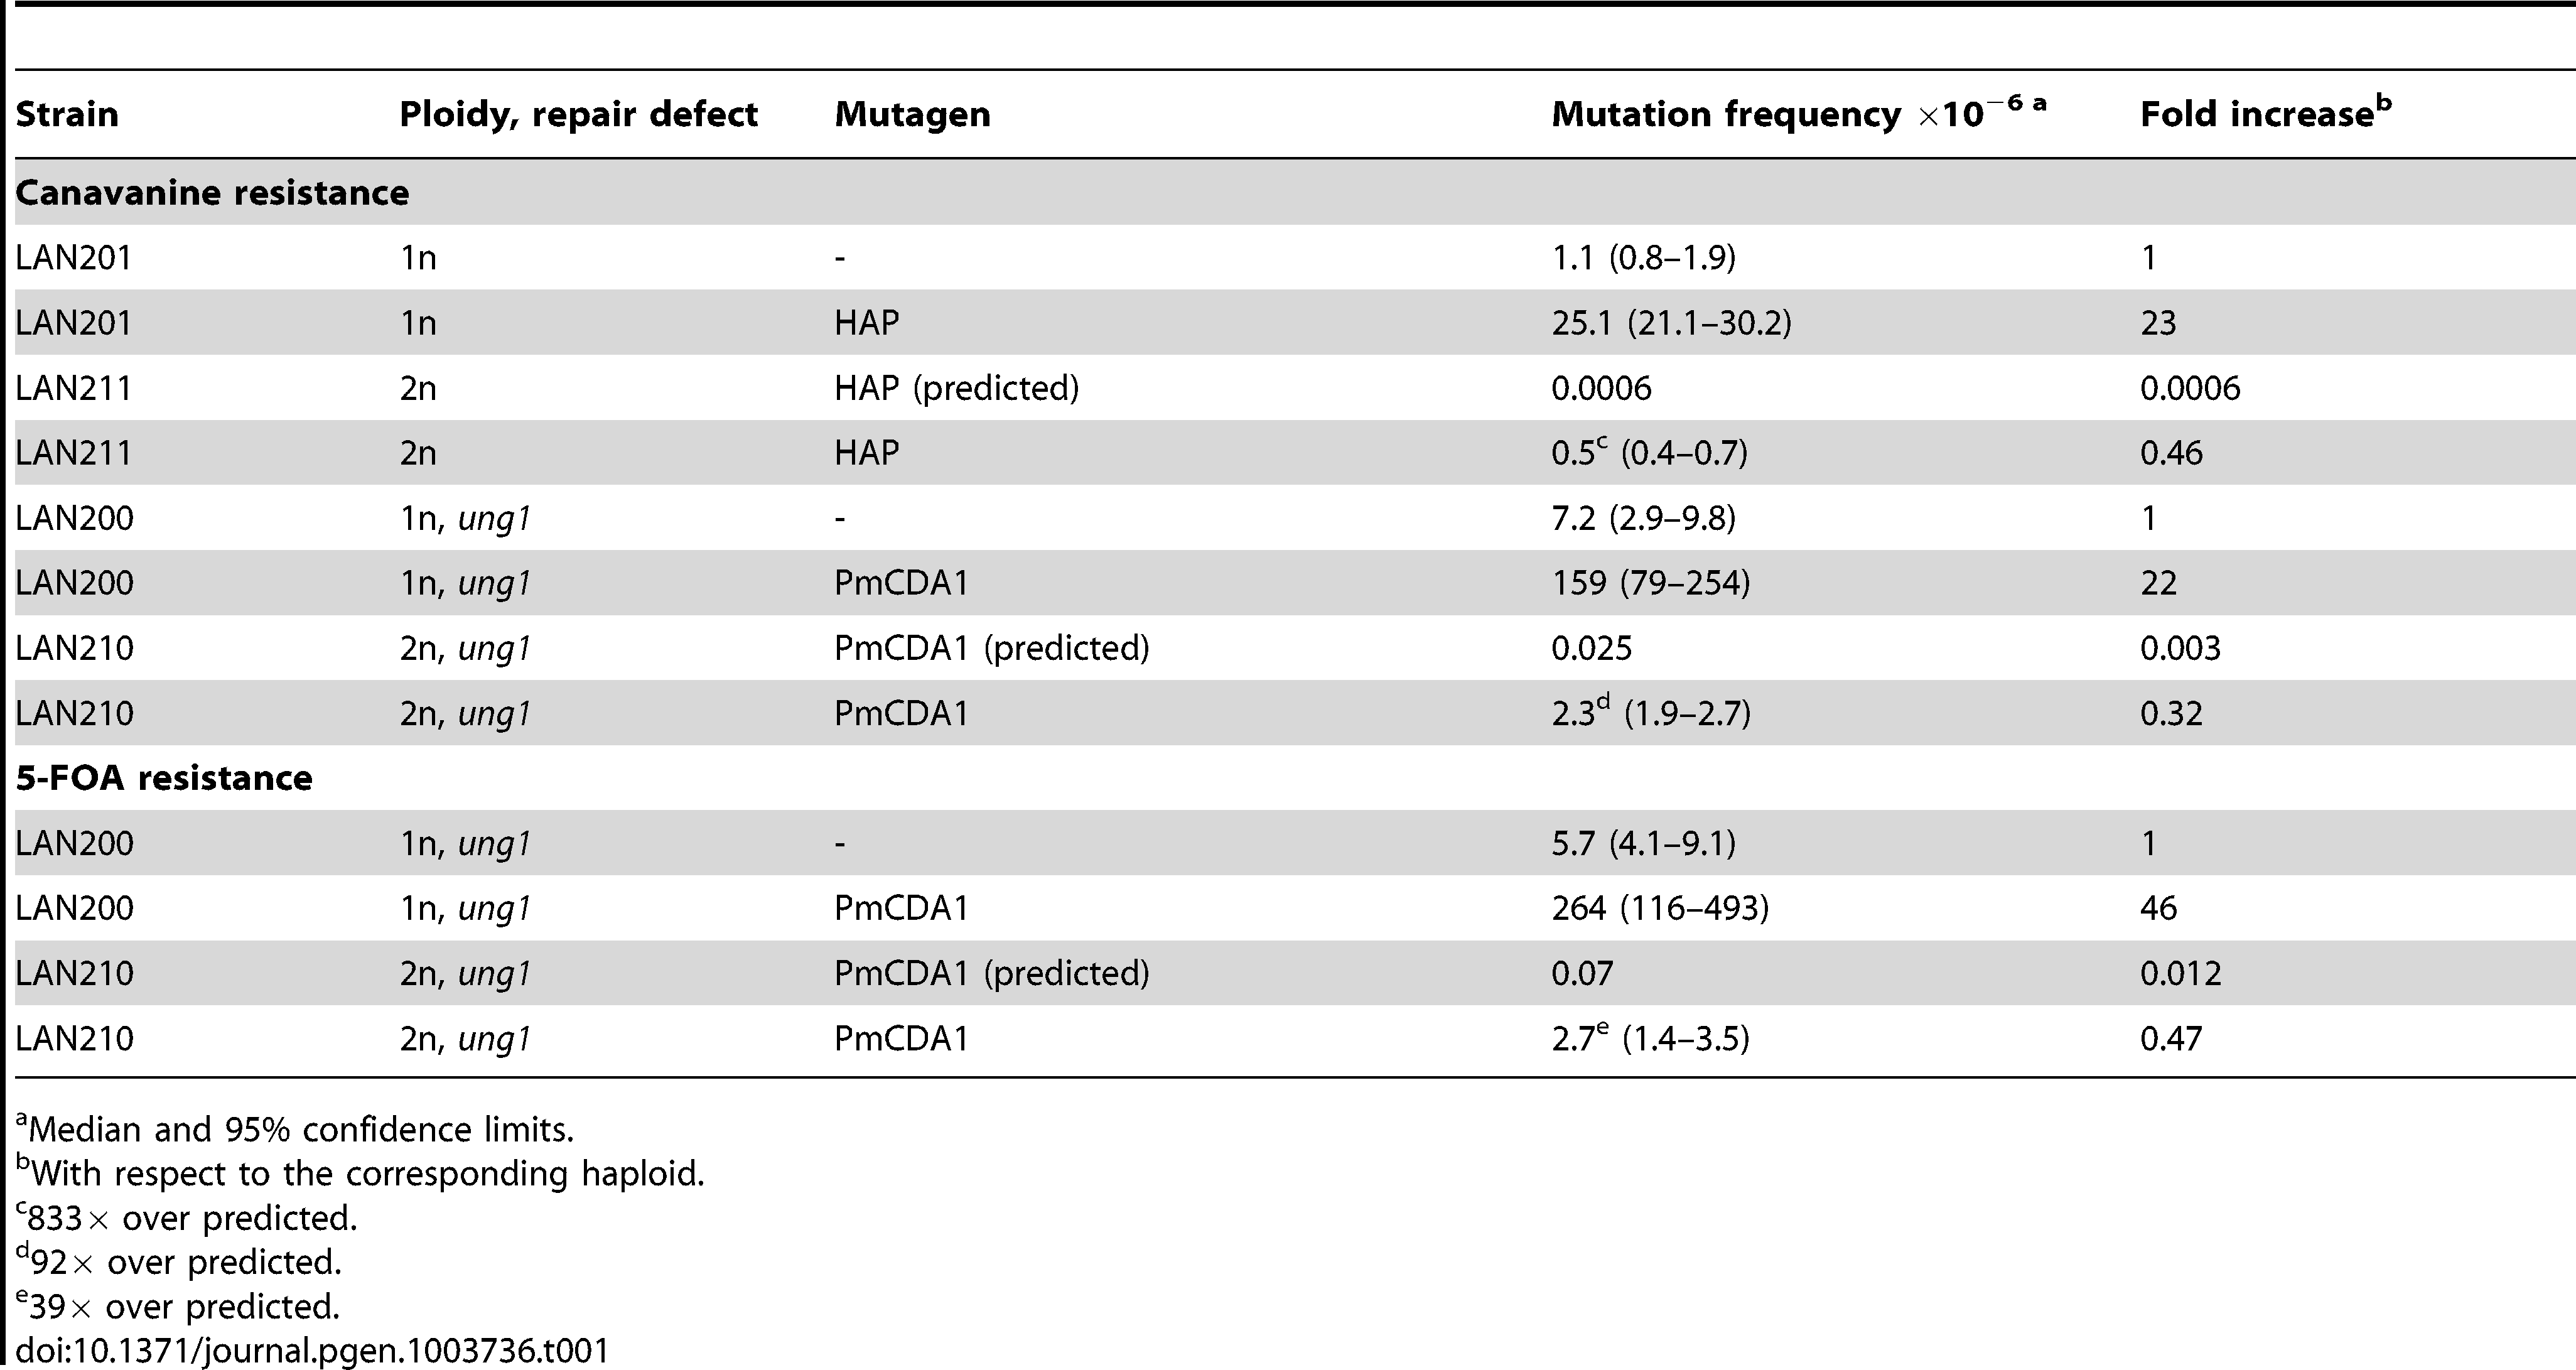 Both HAP and PmCDA1 induce significantly more mutants than expected in diploid strains.